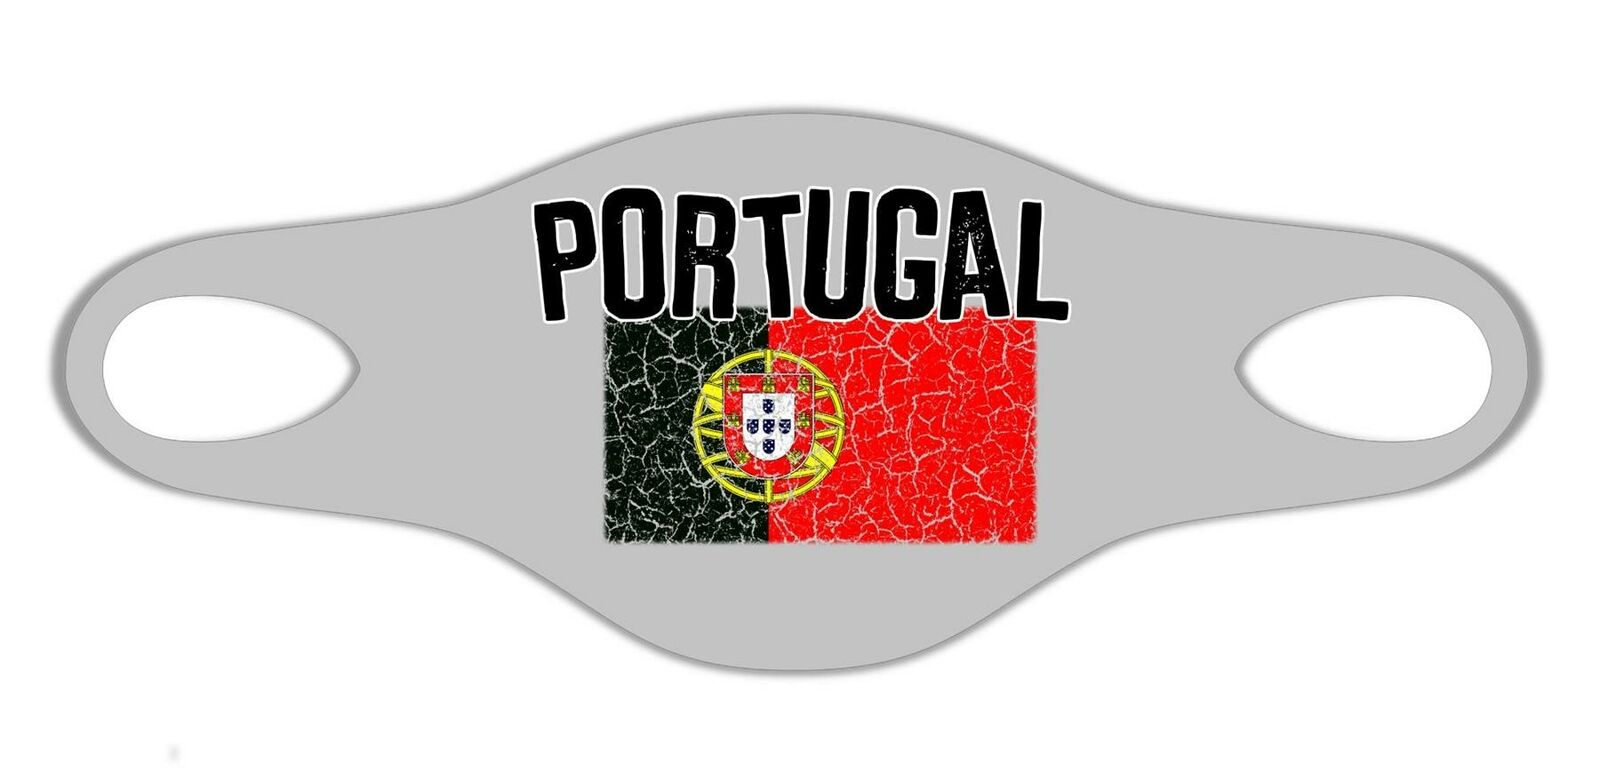 Portugal Patrio Flag Printed Face Mask Protective Reusable Washable Breathable